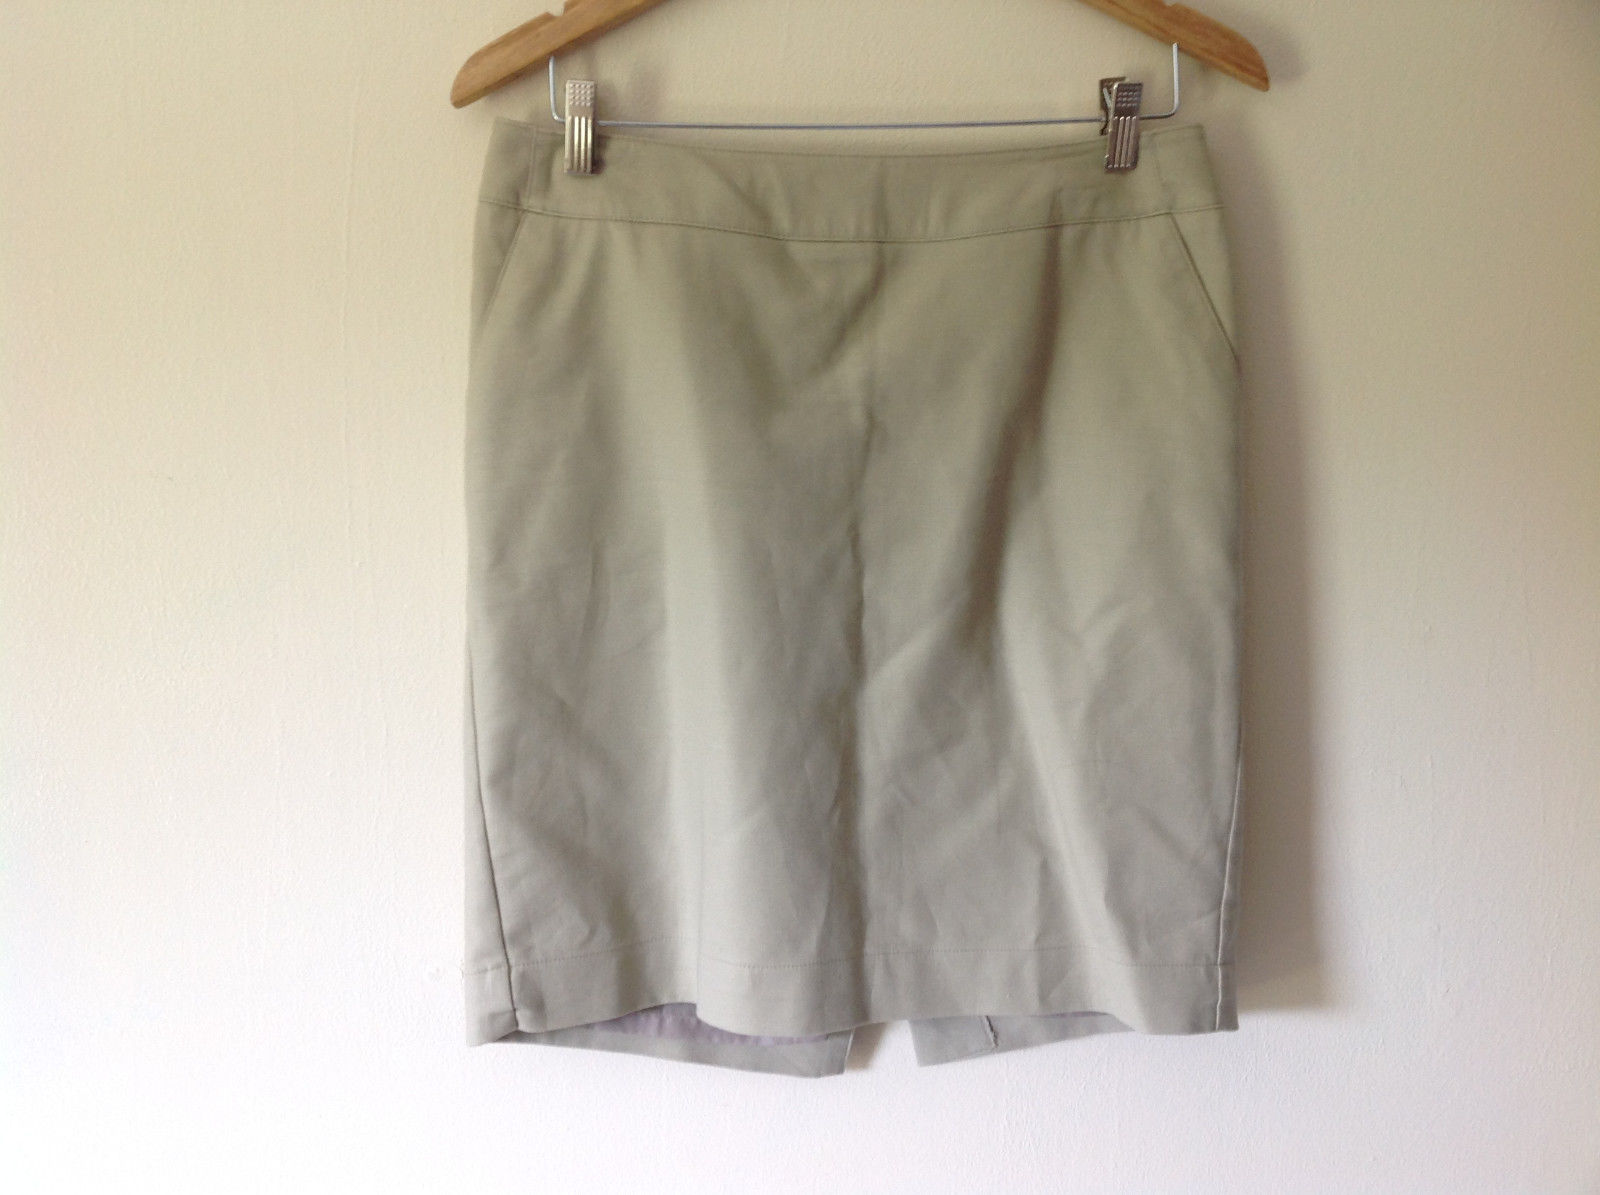 Merona Women's Size 6 Skirt Khaki / Chino Style Beige Above Knee with Back Slit